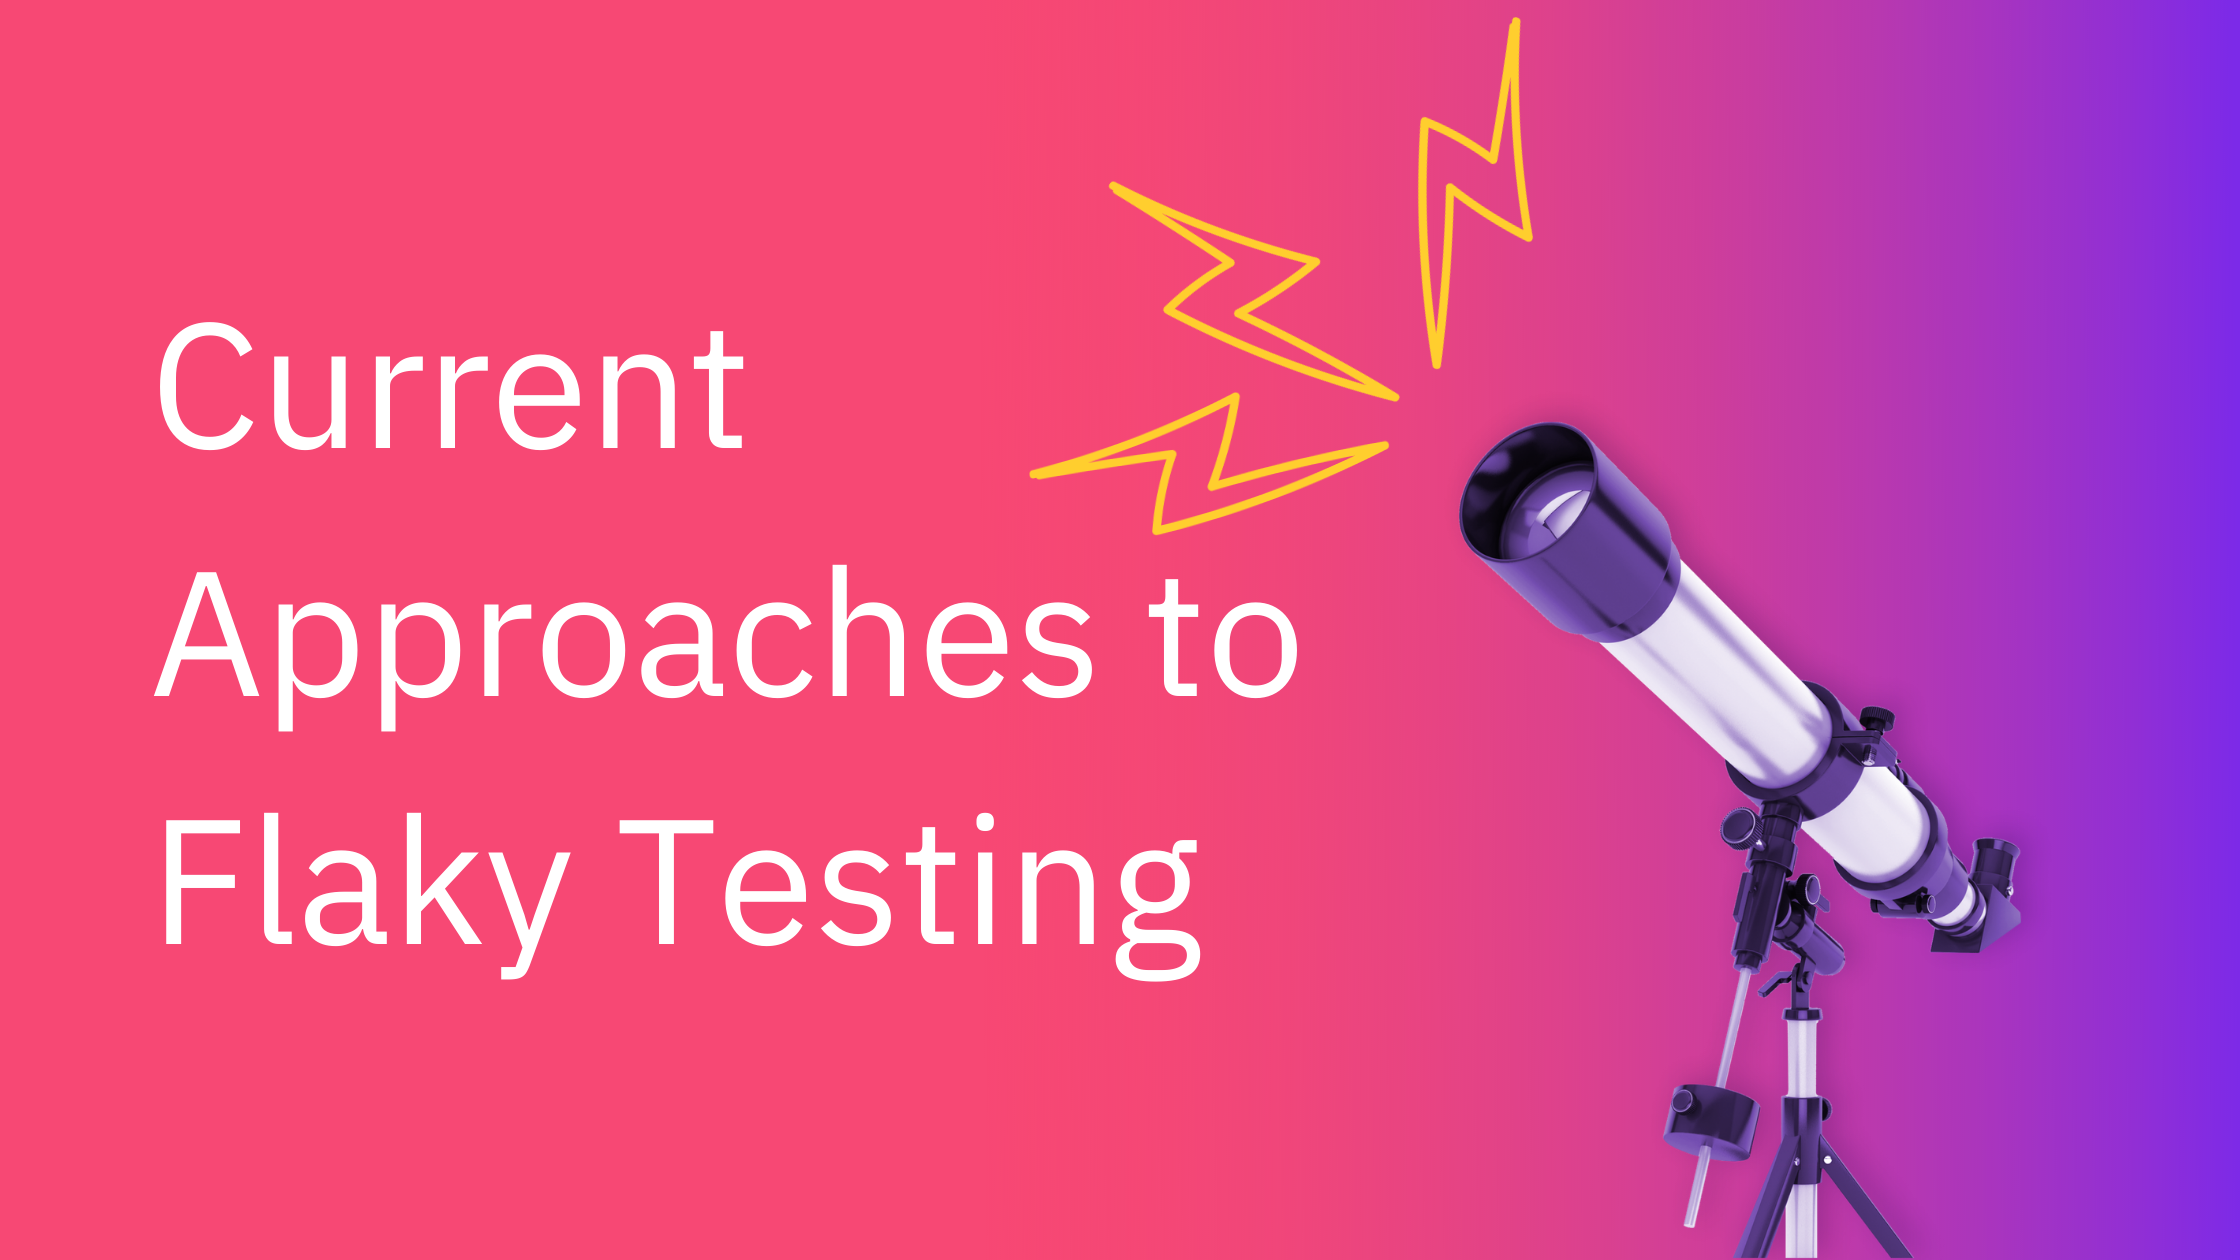 Current Approaches to Flaky Testing